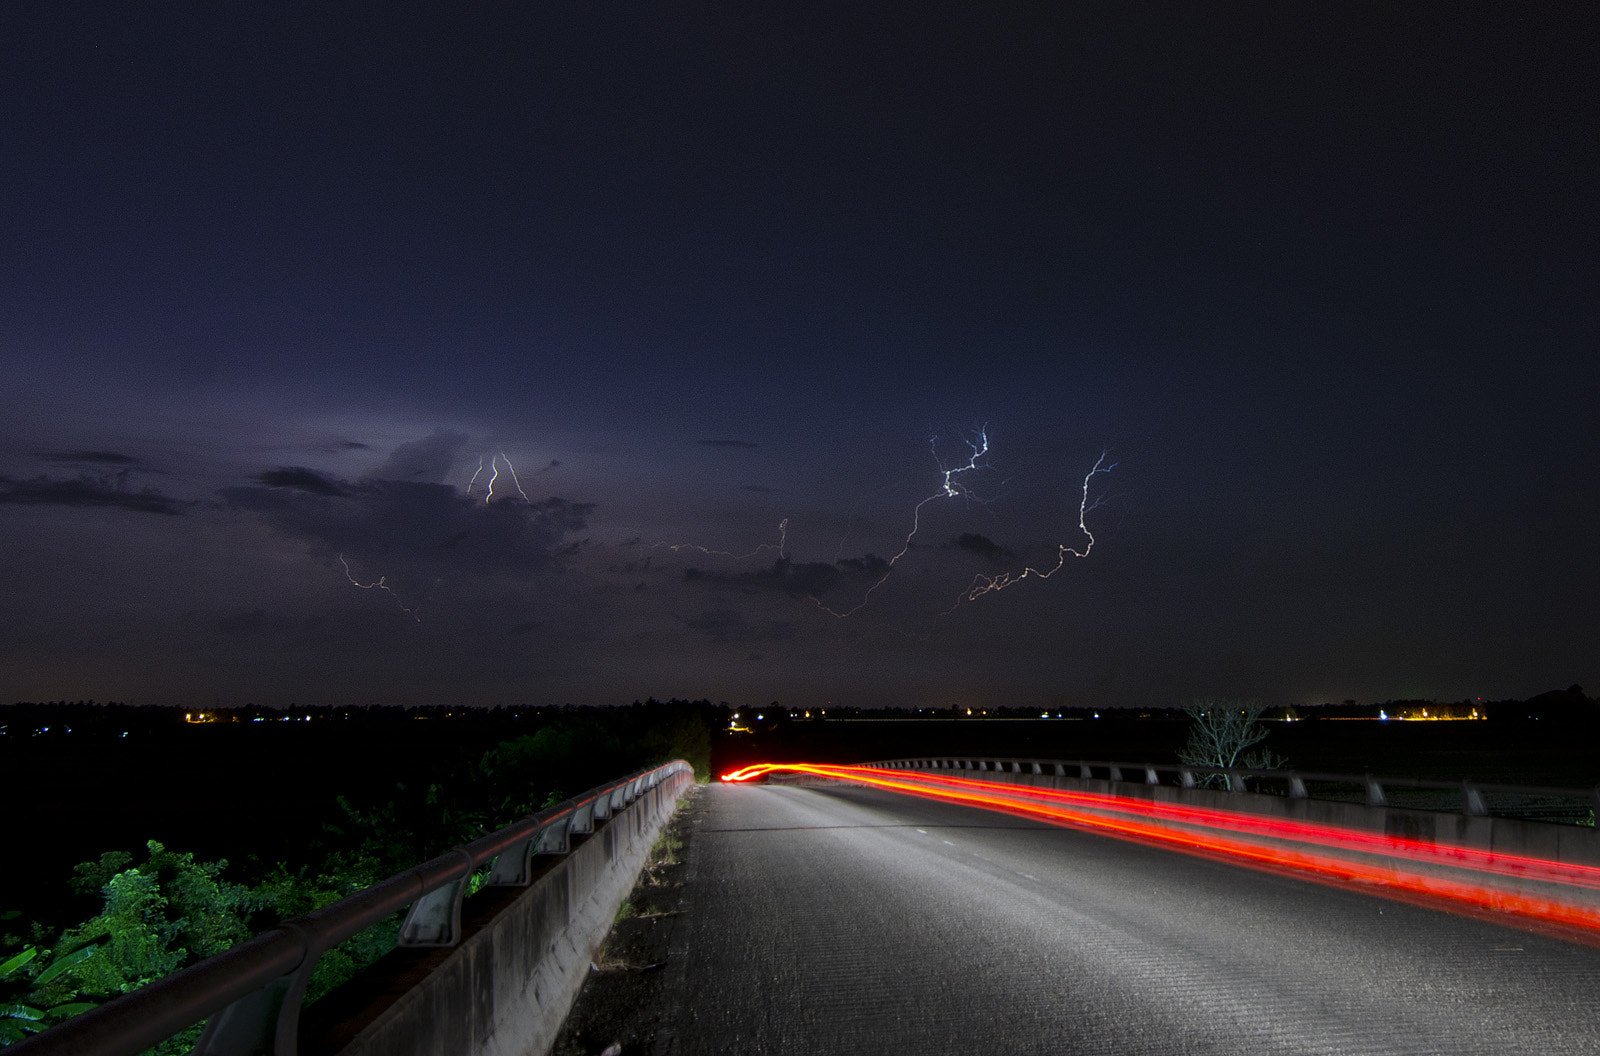 Photograph Art of Lightning XII by apzul farock on 500px